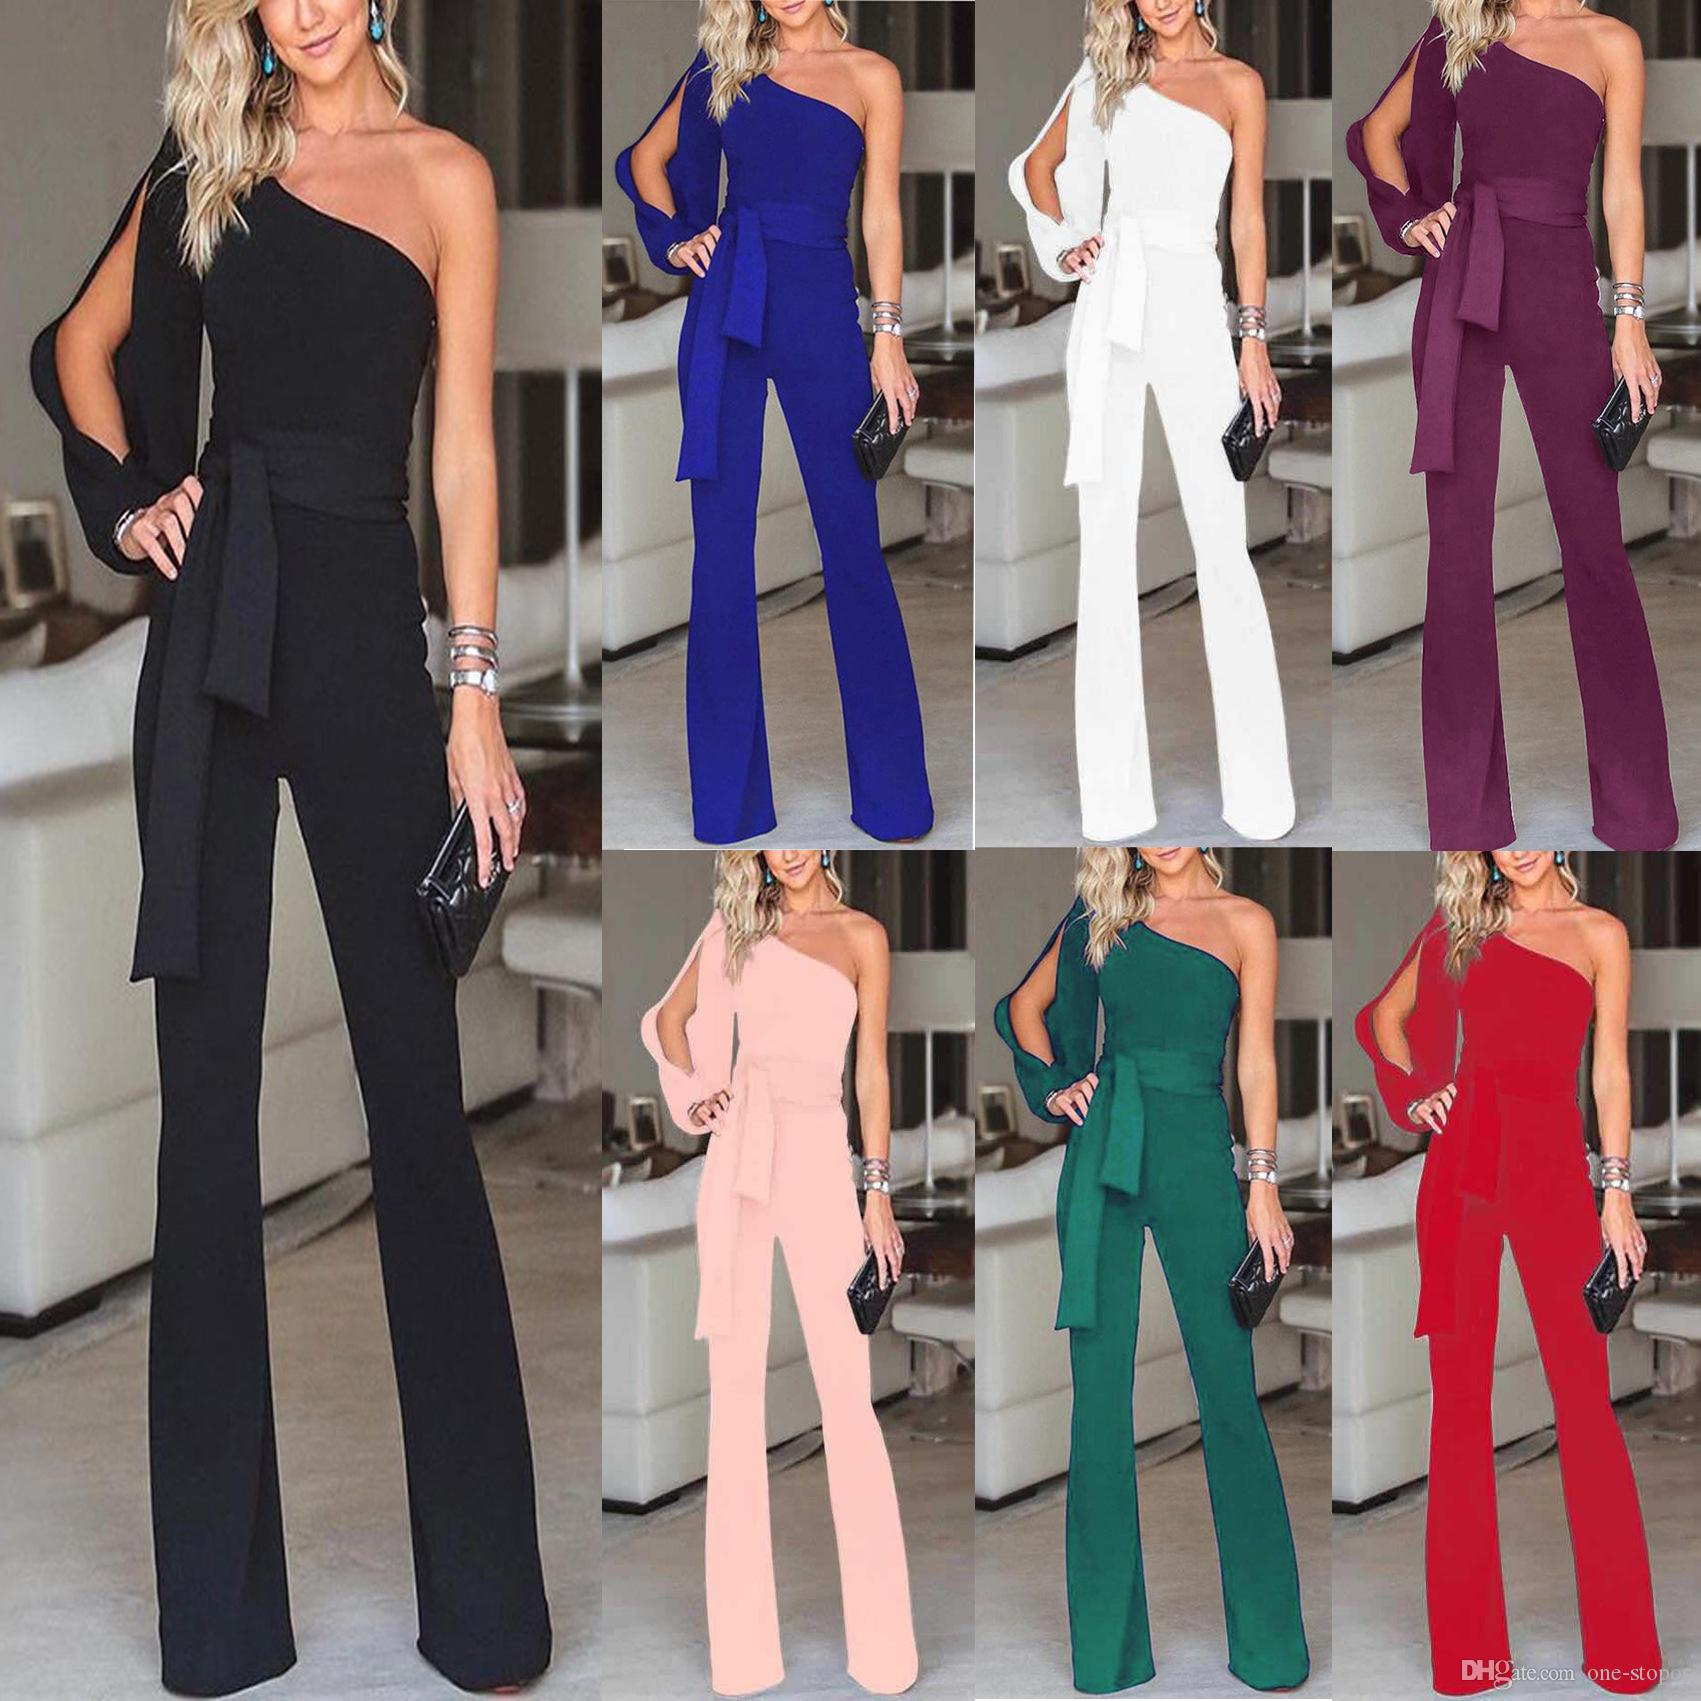 9b6b588695b 2019 2019 New Elegant Jumpsuits Wide Leg Rompers Women One Shoulder Overalls  Sexy Night Club Bodysuit Fashion Casual Pants Suits FS4246 From One Stopos